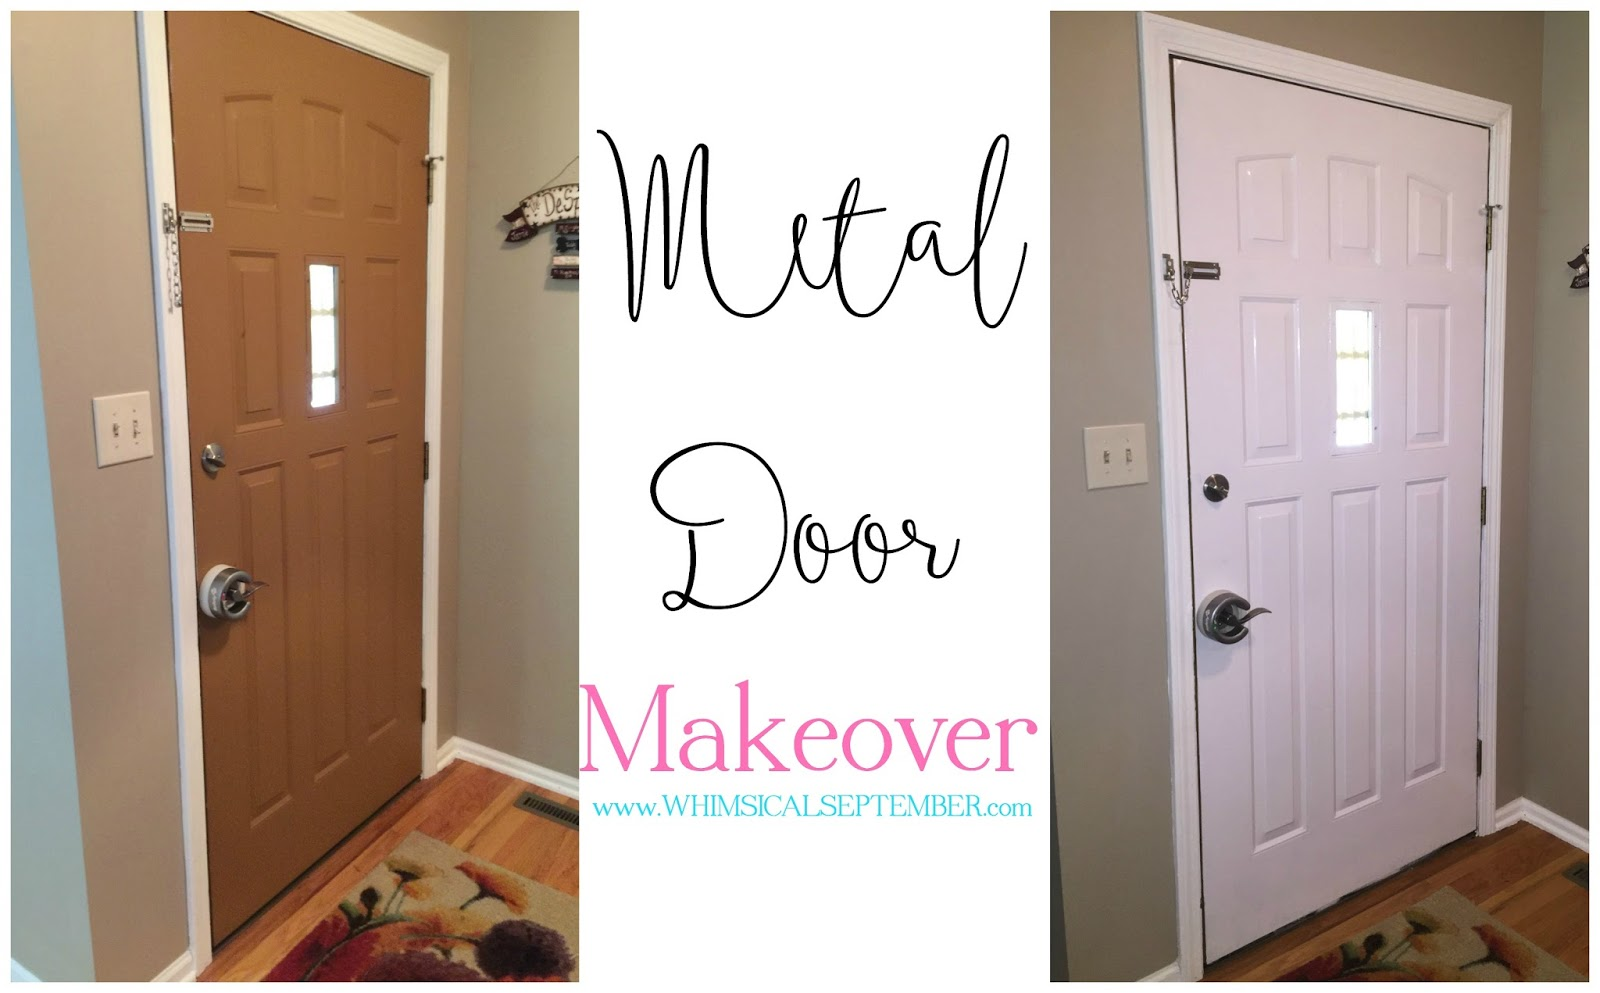 A Metal Door Makeover A Very Naughty Dog And An Ad Space Giveaway Whimsi